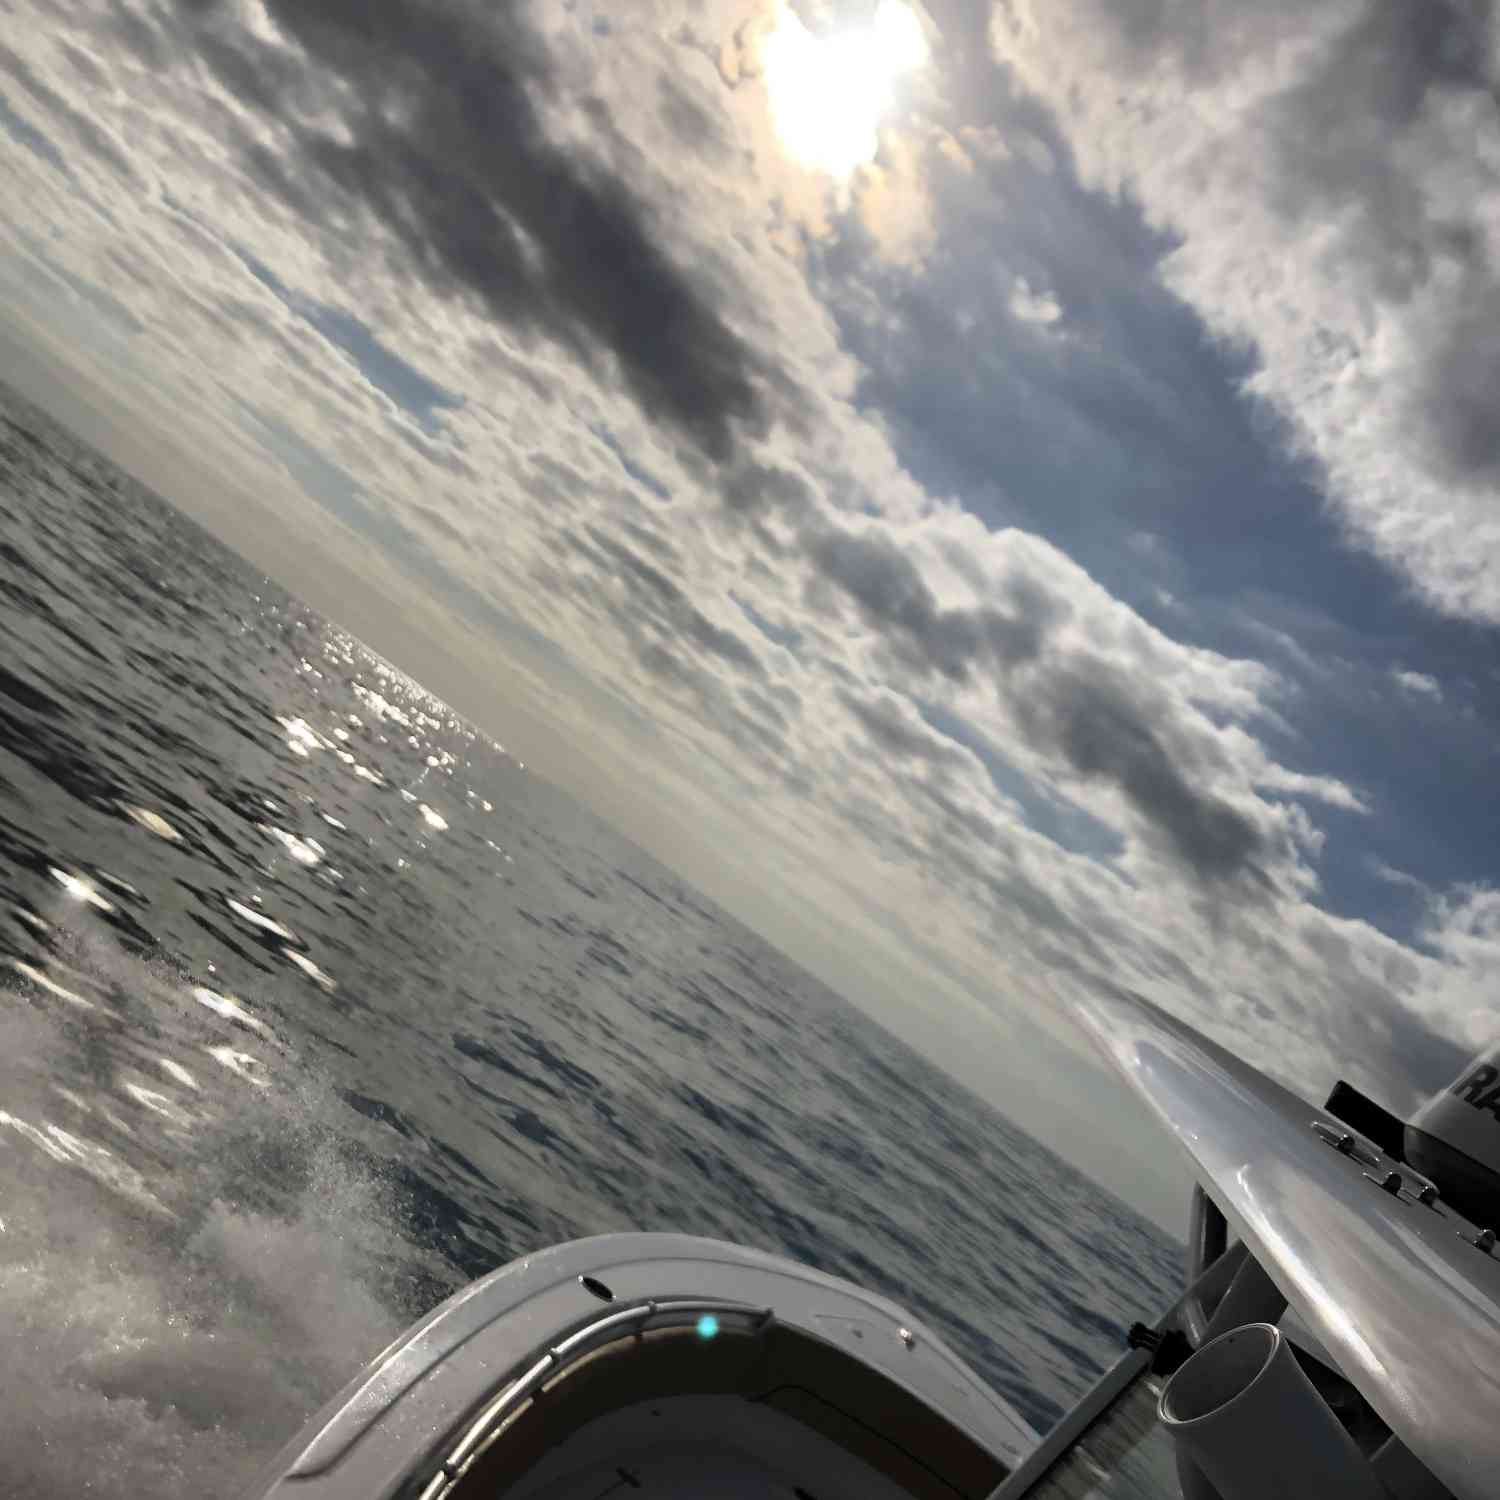 Title: 100 miles offshore trolling for wahoo - On board their Sportsman Open 282 Center Console - Location: freeport texas. Participating in the Photo Contest #SportsmanApril2019